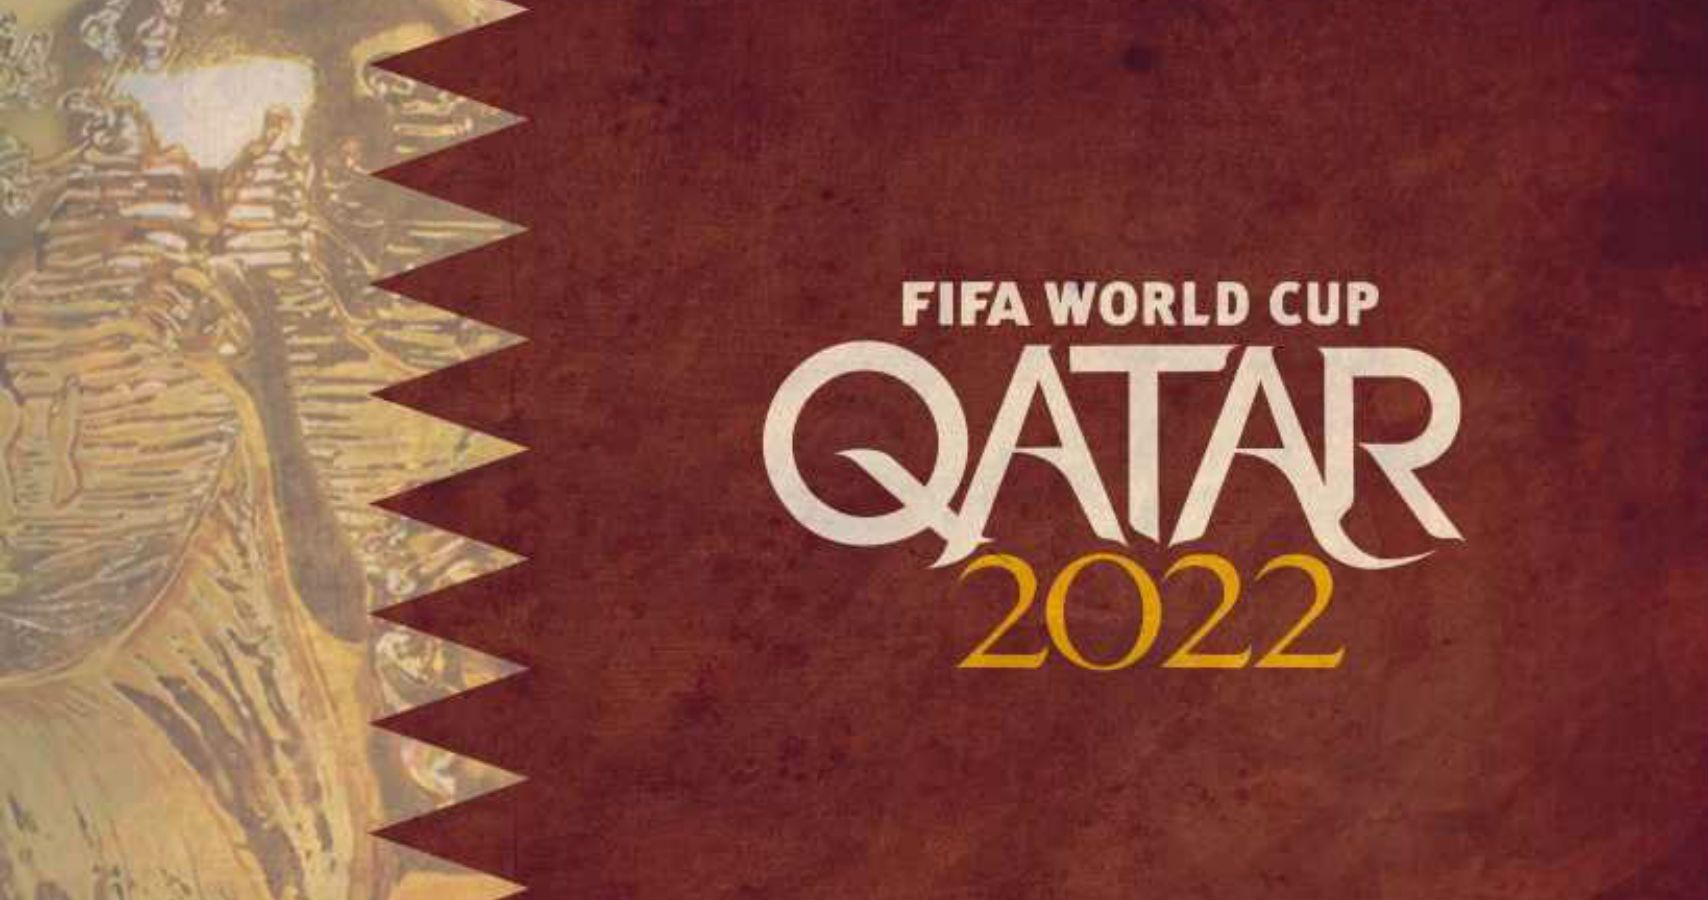 Qatar 2022 Bid Book